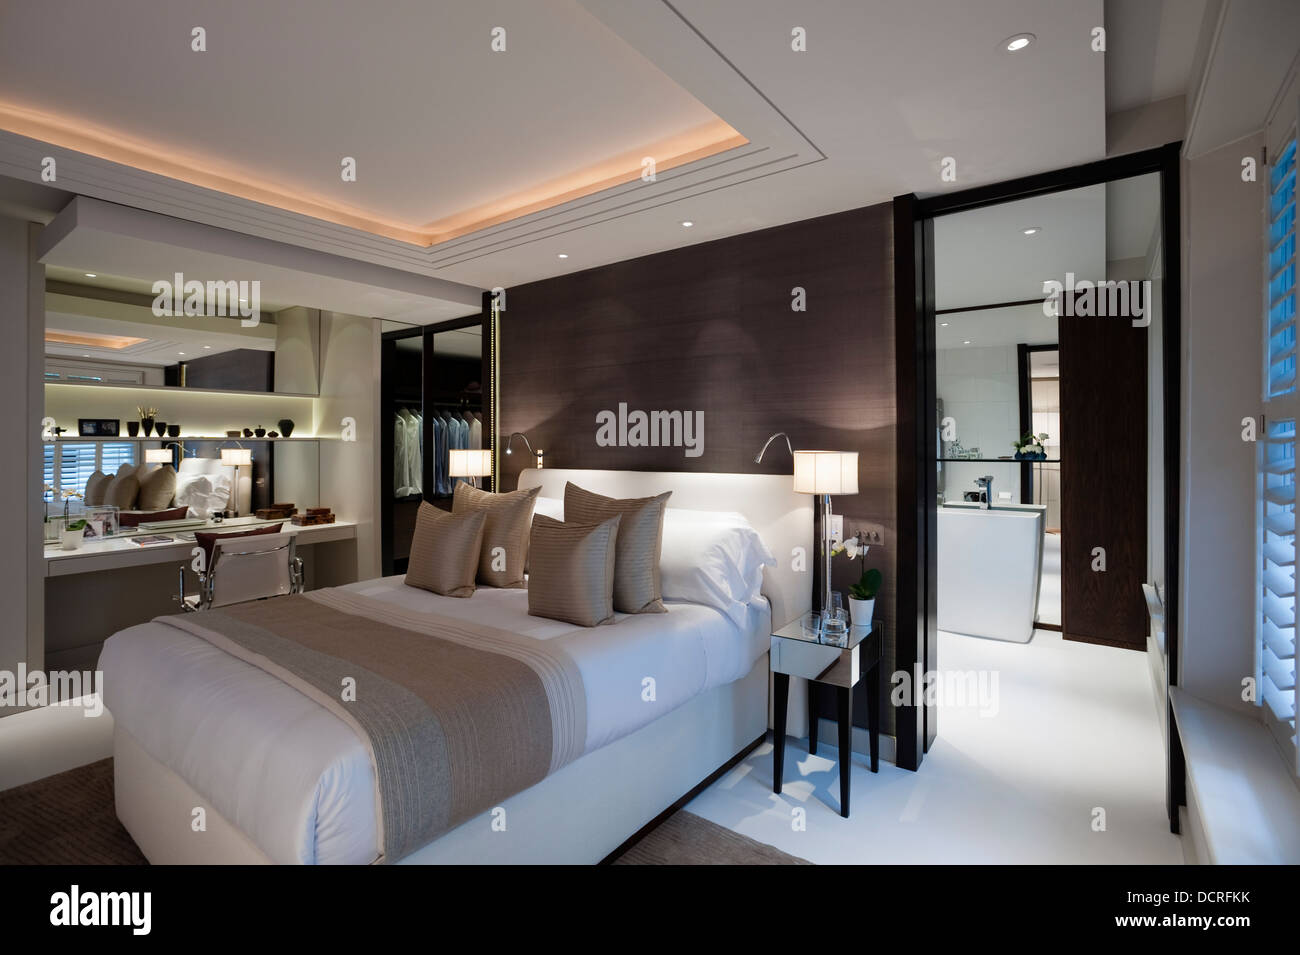 Bedroom of london city apartment with en suite bathroom and dressing stock photo royalty free Master bedroom ensuite and dressing room